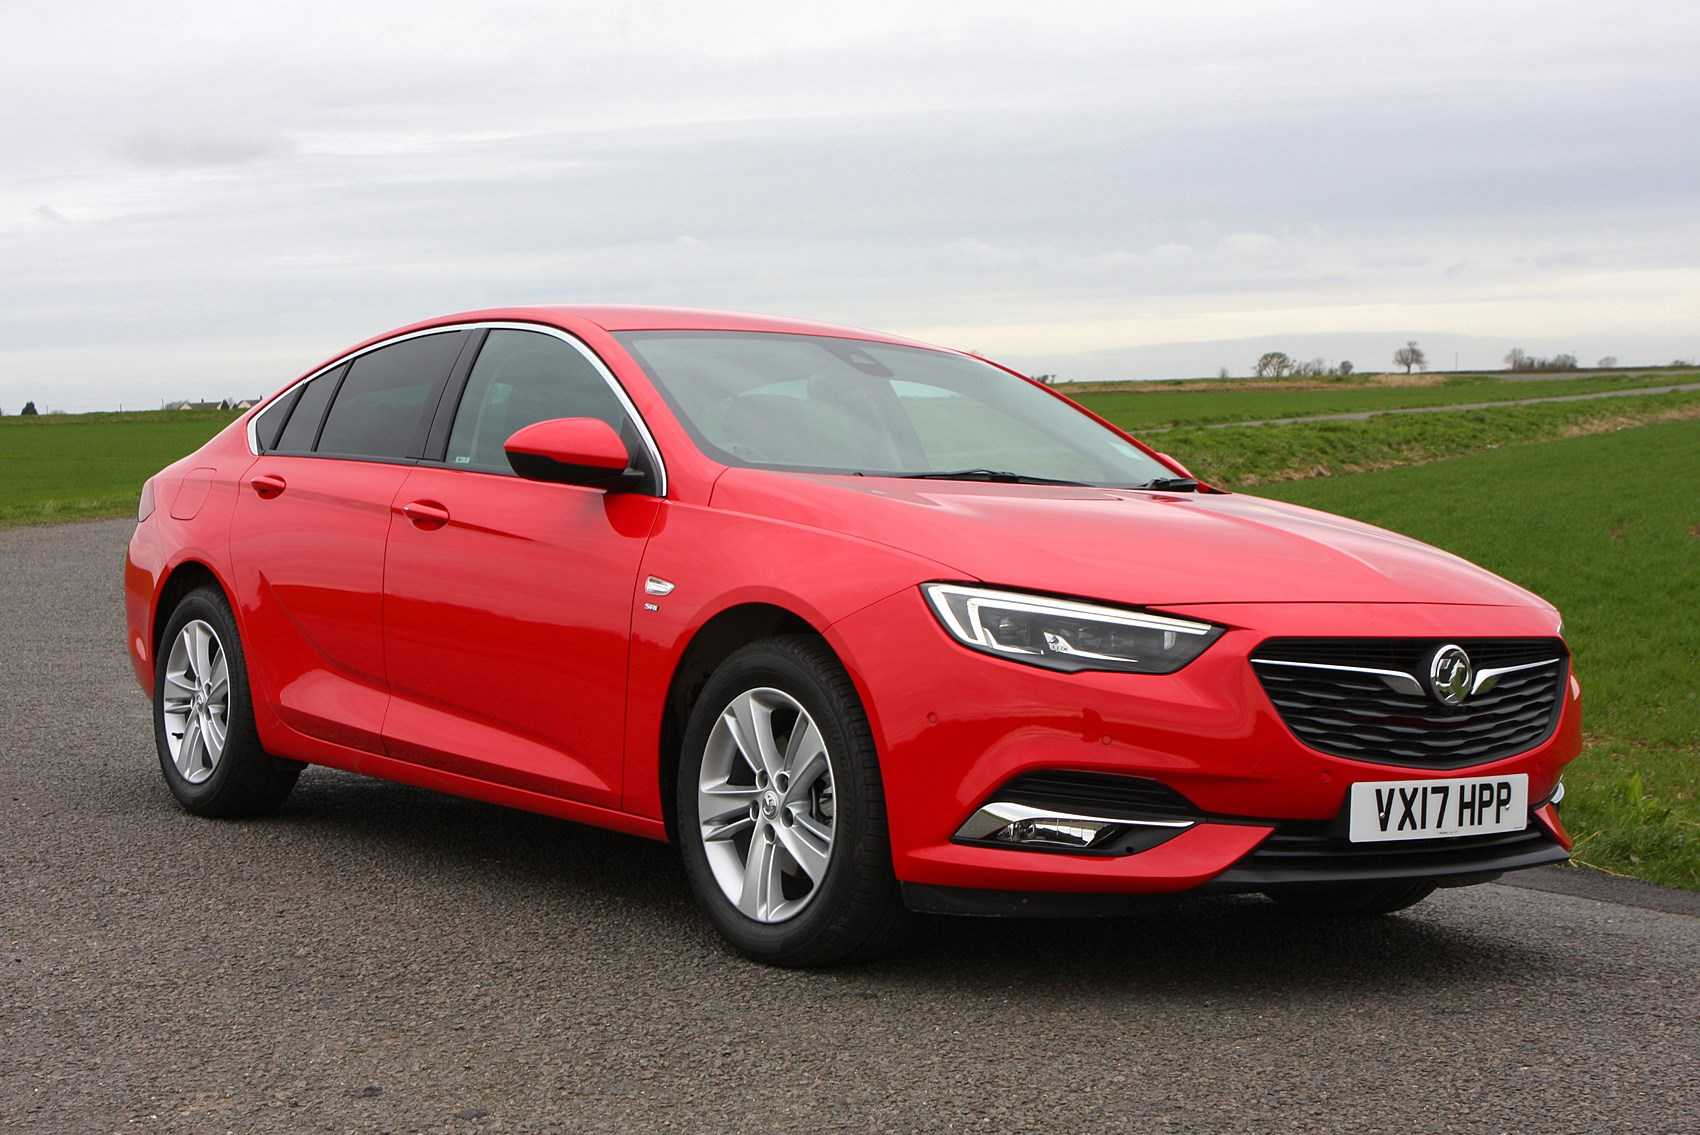 vauxhall insignia grand sport review features equipment. Black Bedroom Furniture Sets. Home Design Ideas